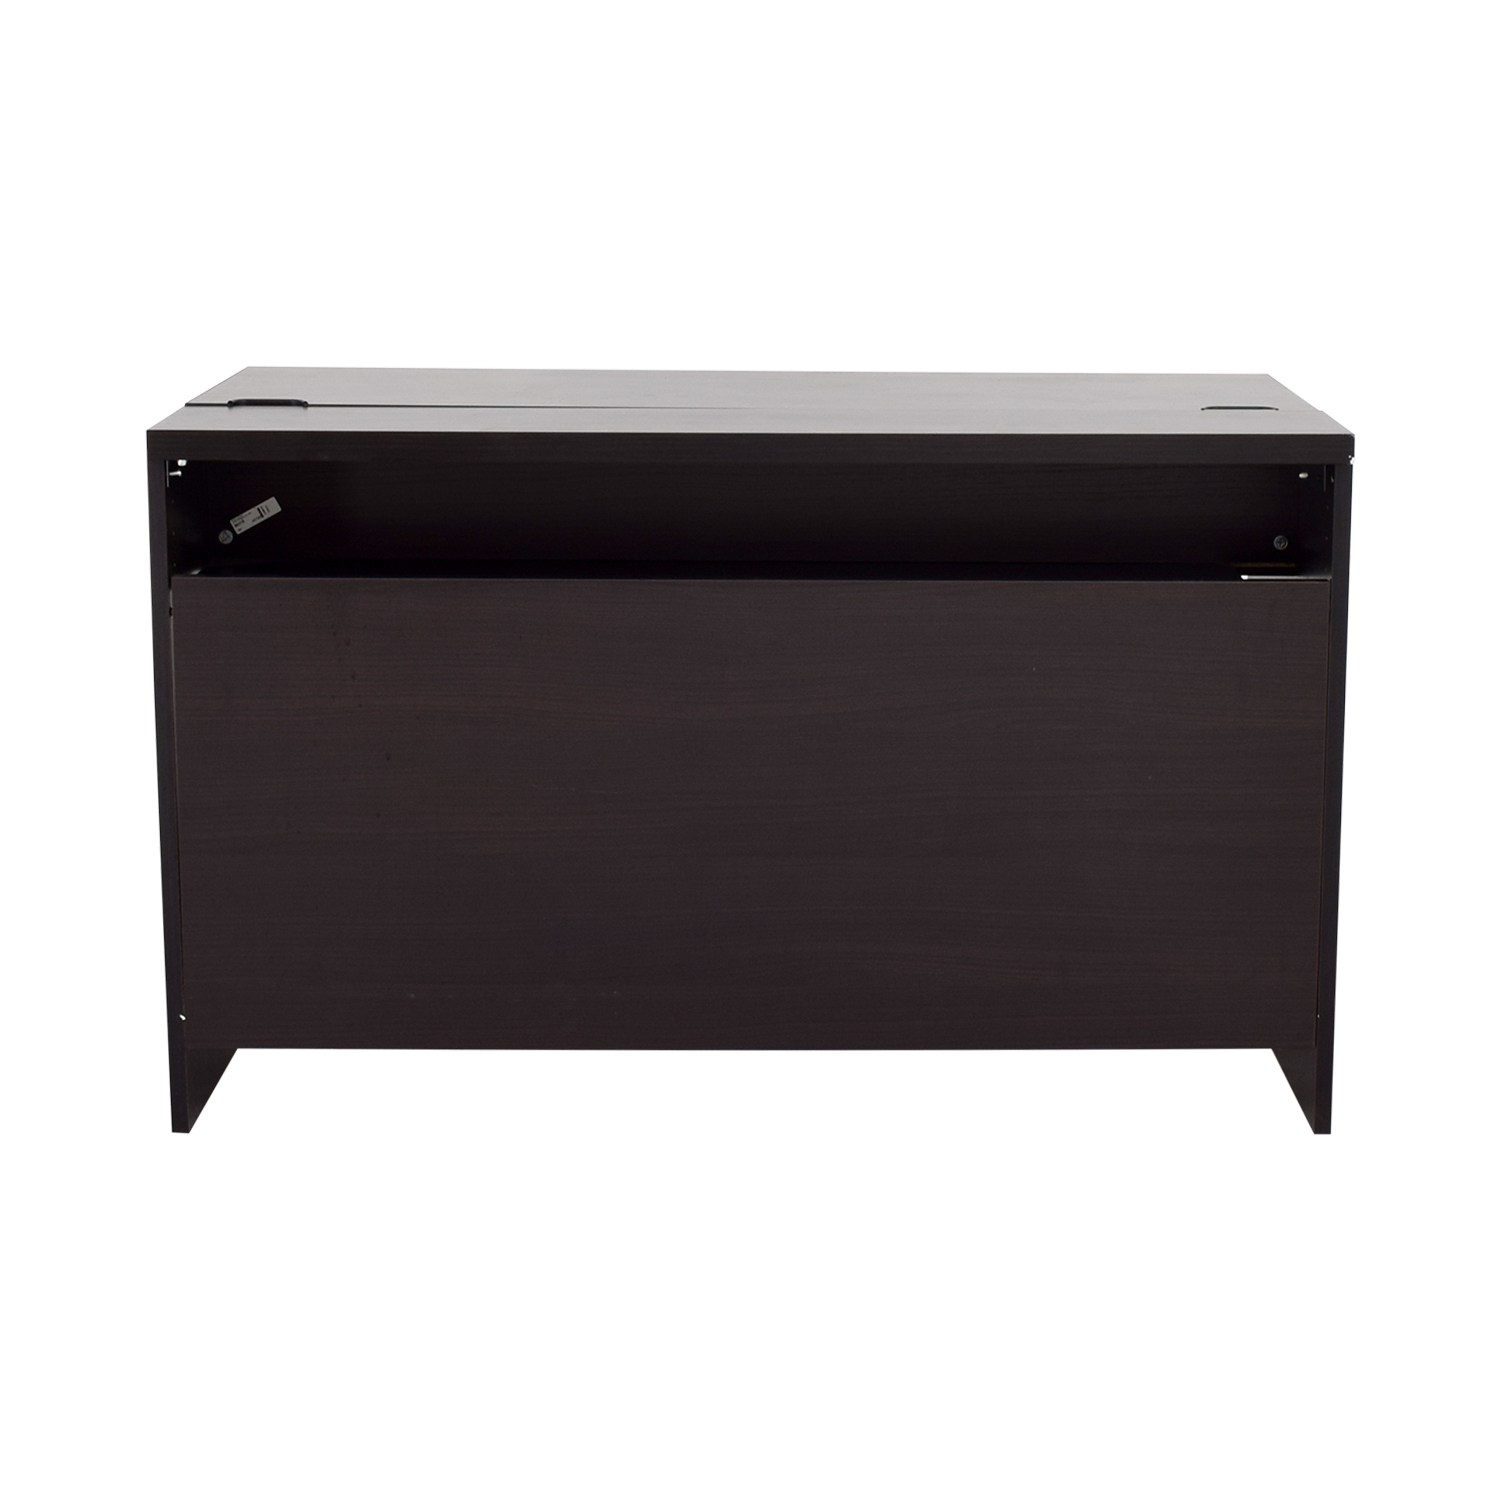 Ikea desk black hostgarcia for Ikea desk black